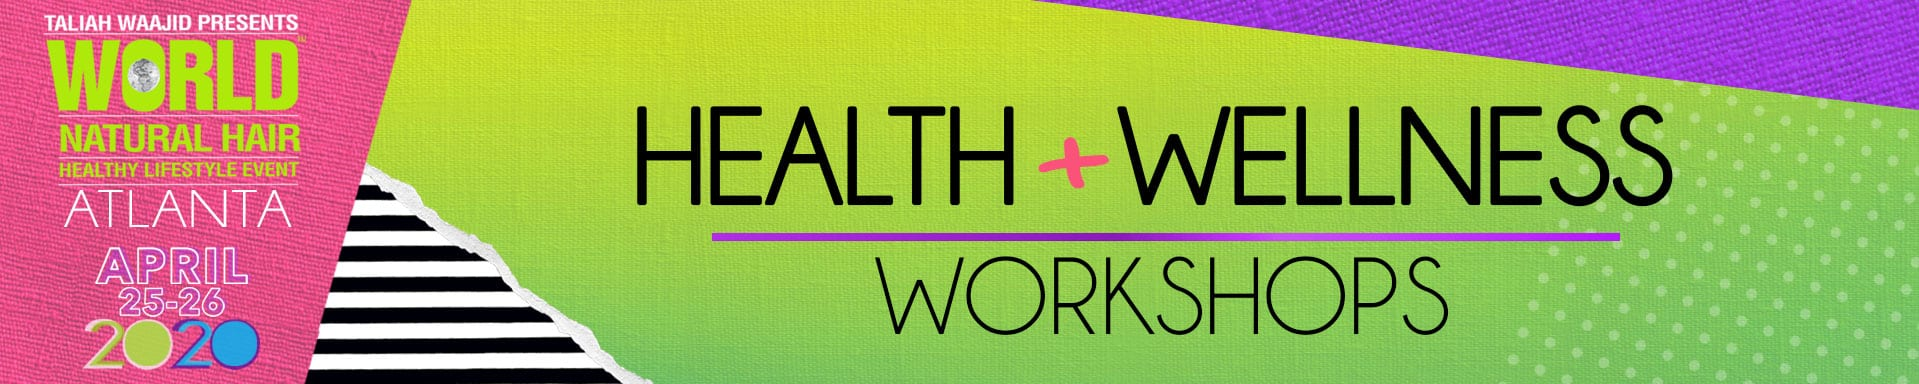 Workshop_Health_Wellness_Header